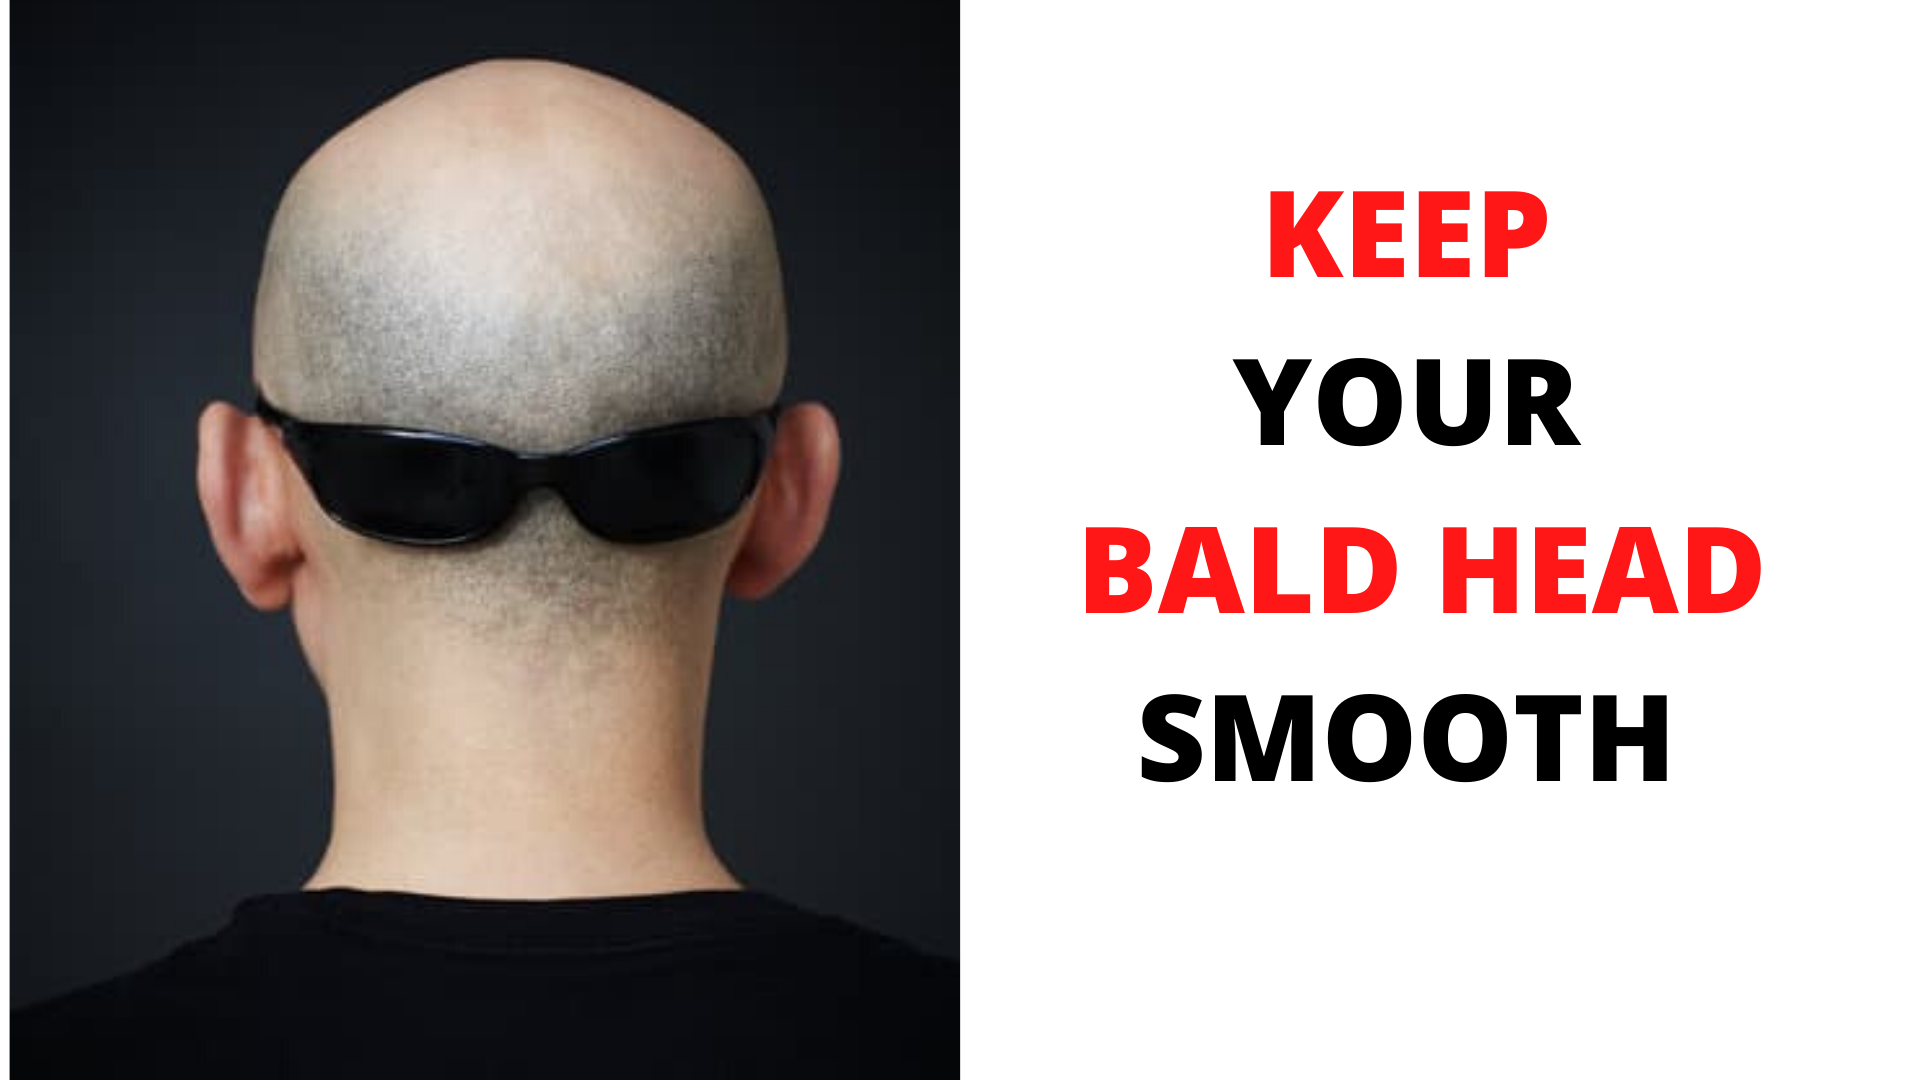 how to keep your bald head smooth without shaving